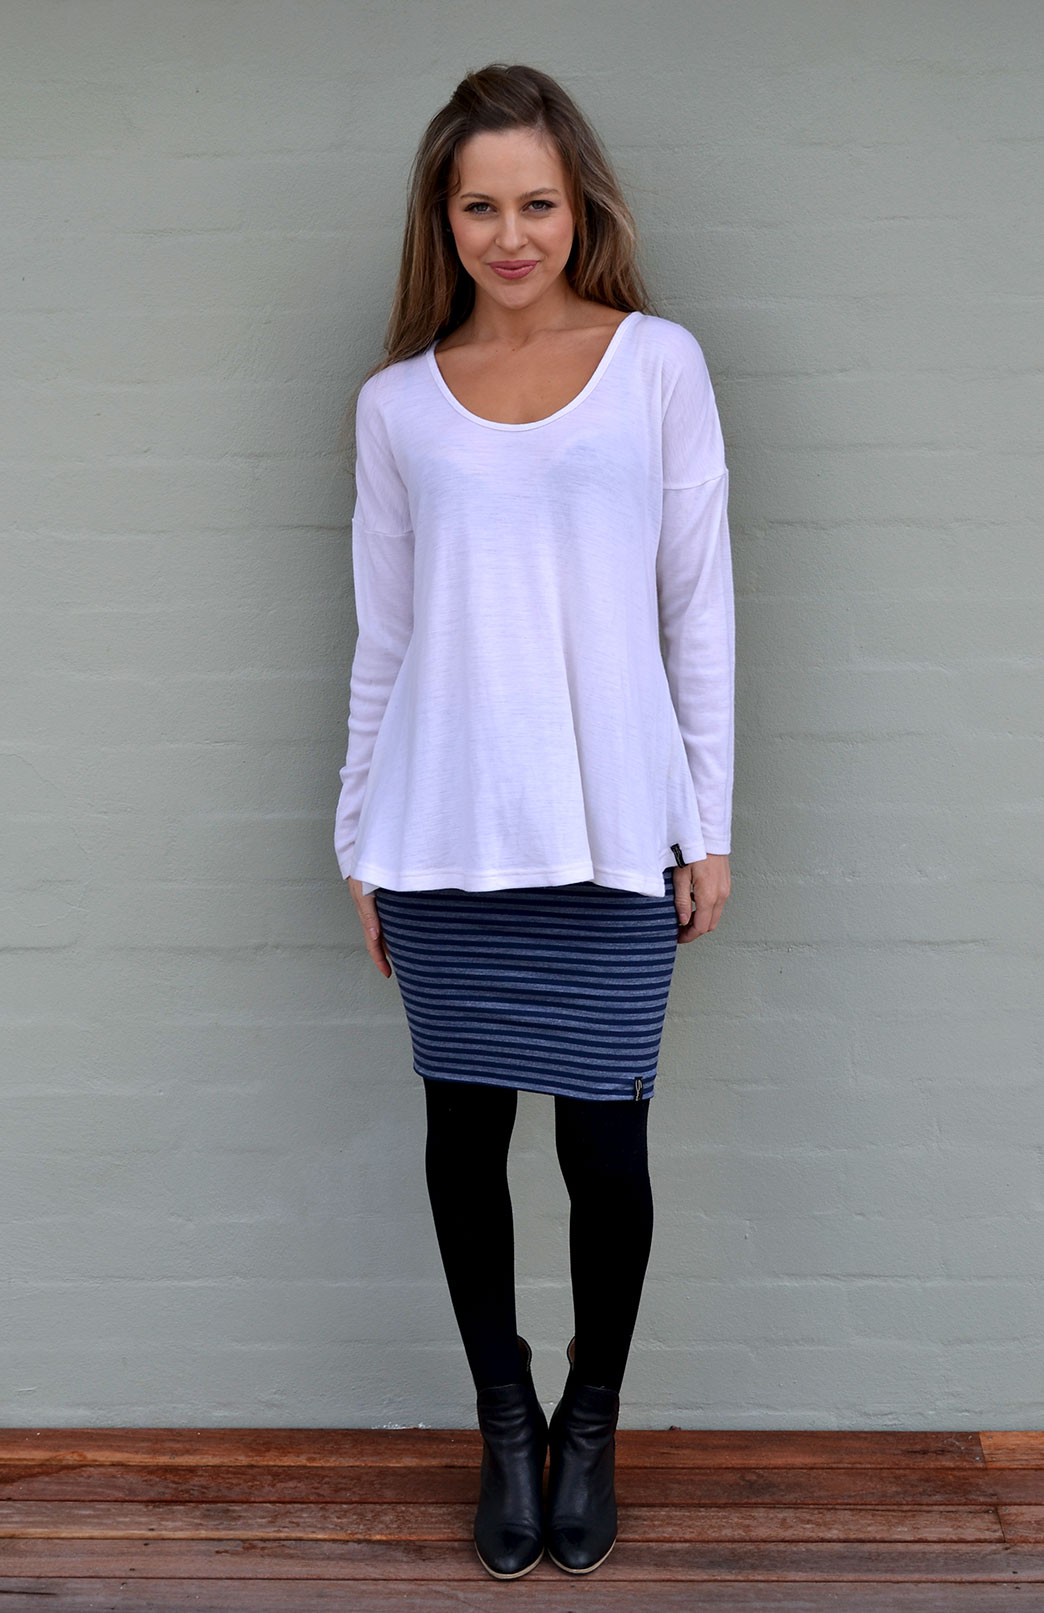 Wave Top - Women's Ivory Wool Top with dropped shoulder - Smitten Merino Tasmania Australia